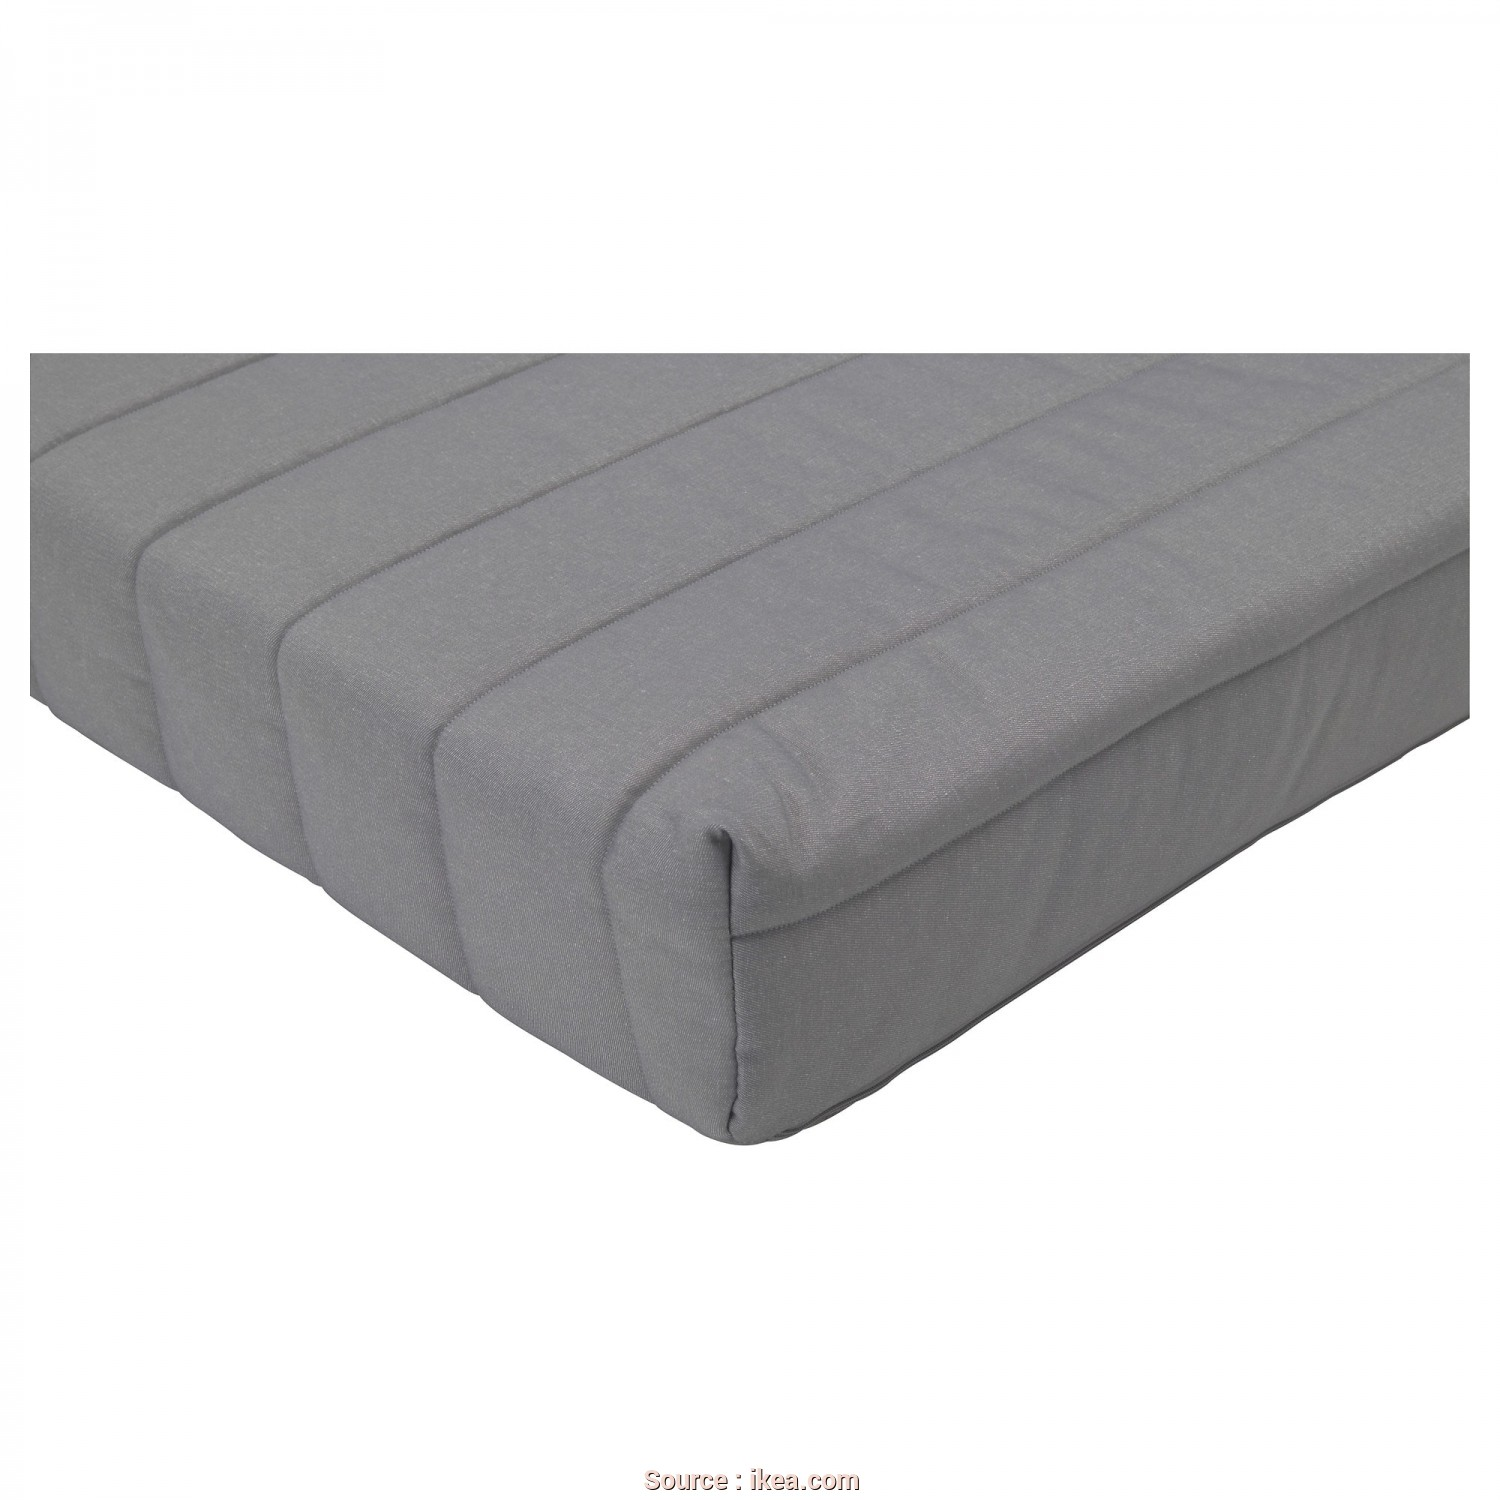 Futon Ikea Boucherville, Sbalorditivo Inter IKEA Systems B.V. 1999, 2019, Privacy Policy, Cookie Policy, Accessibility